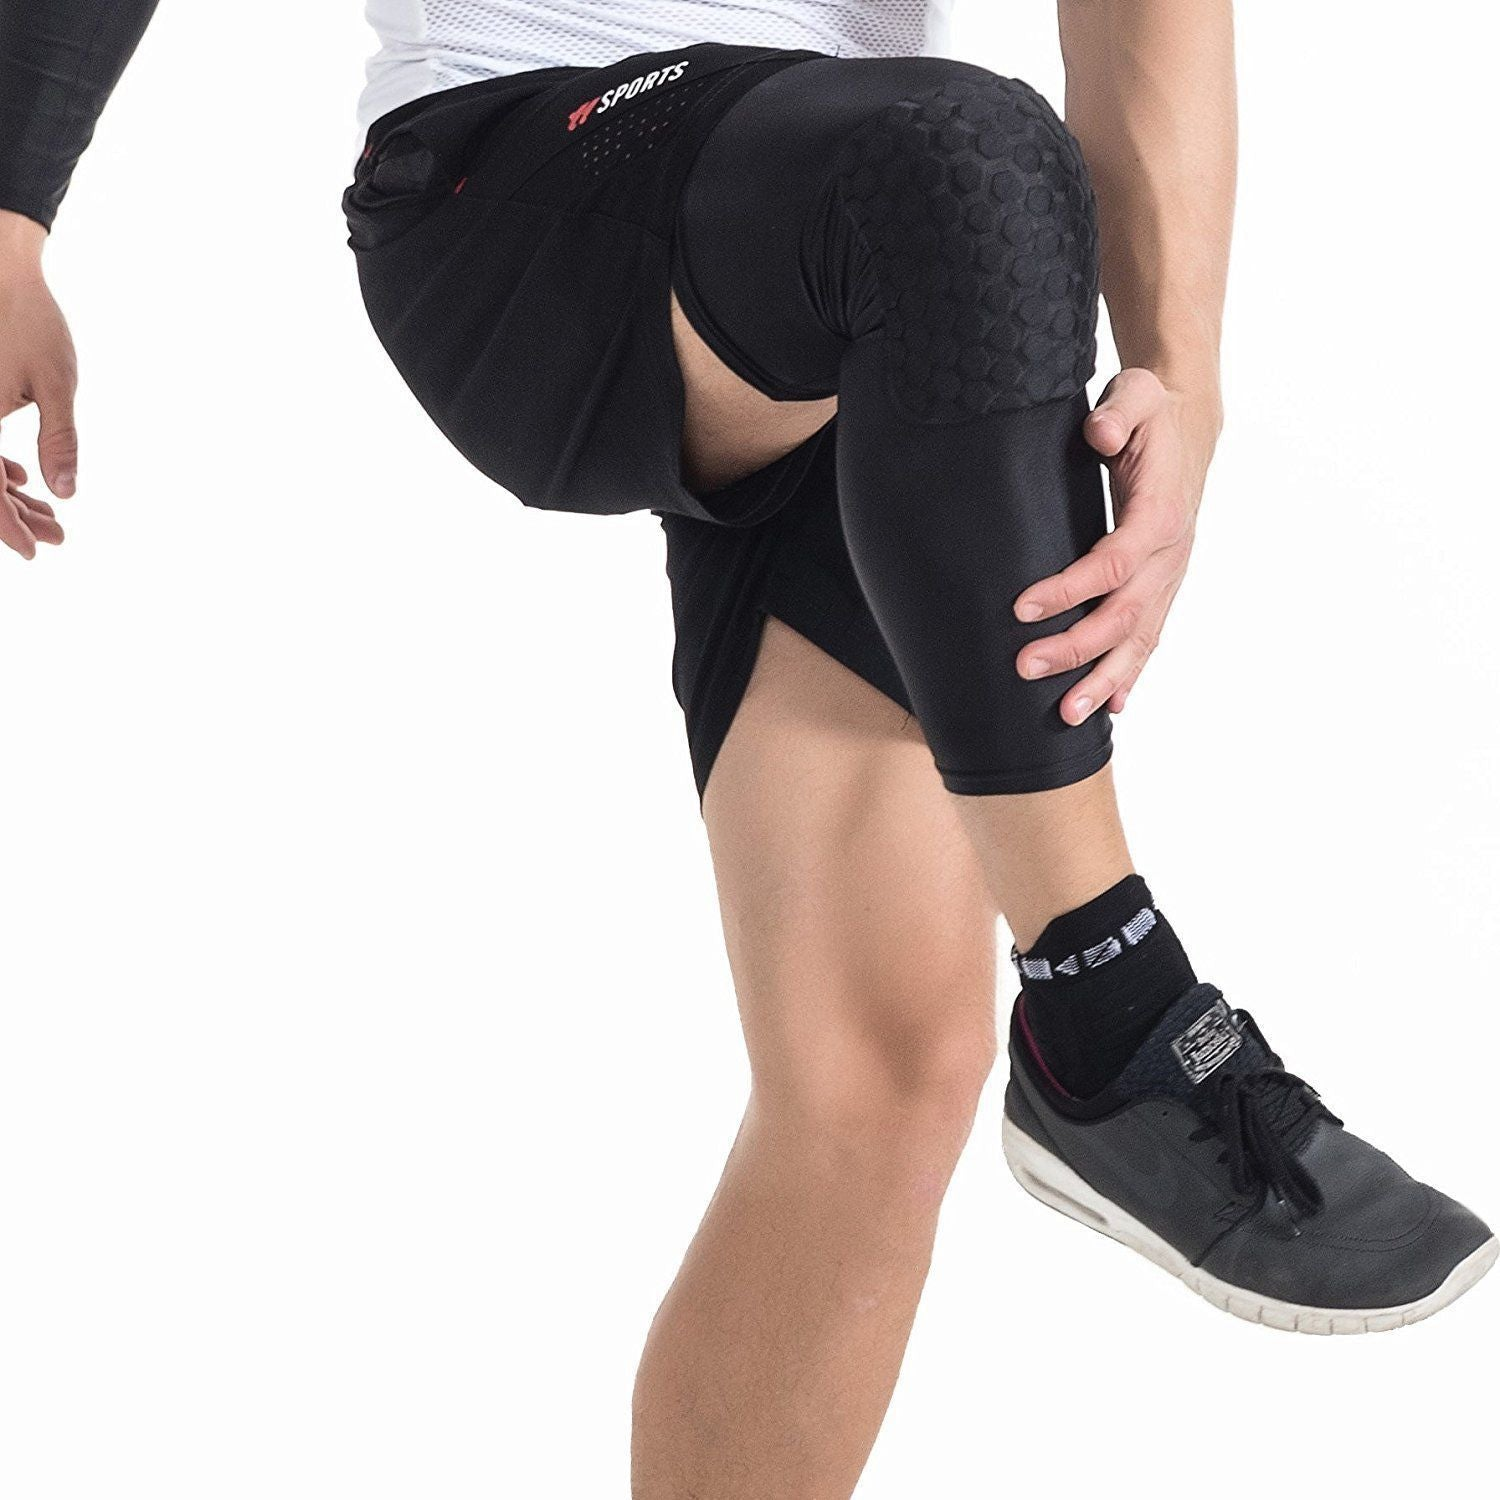 Compression Sleeve Knee Brace with Protector Cup